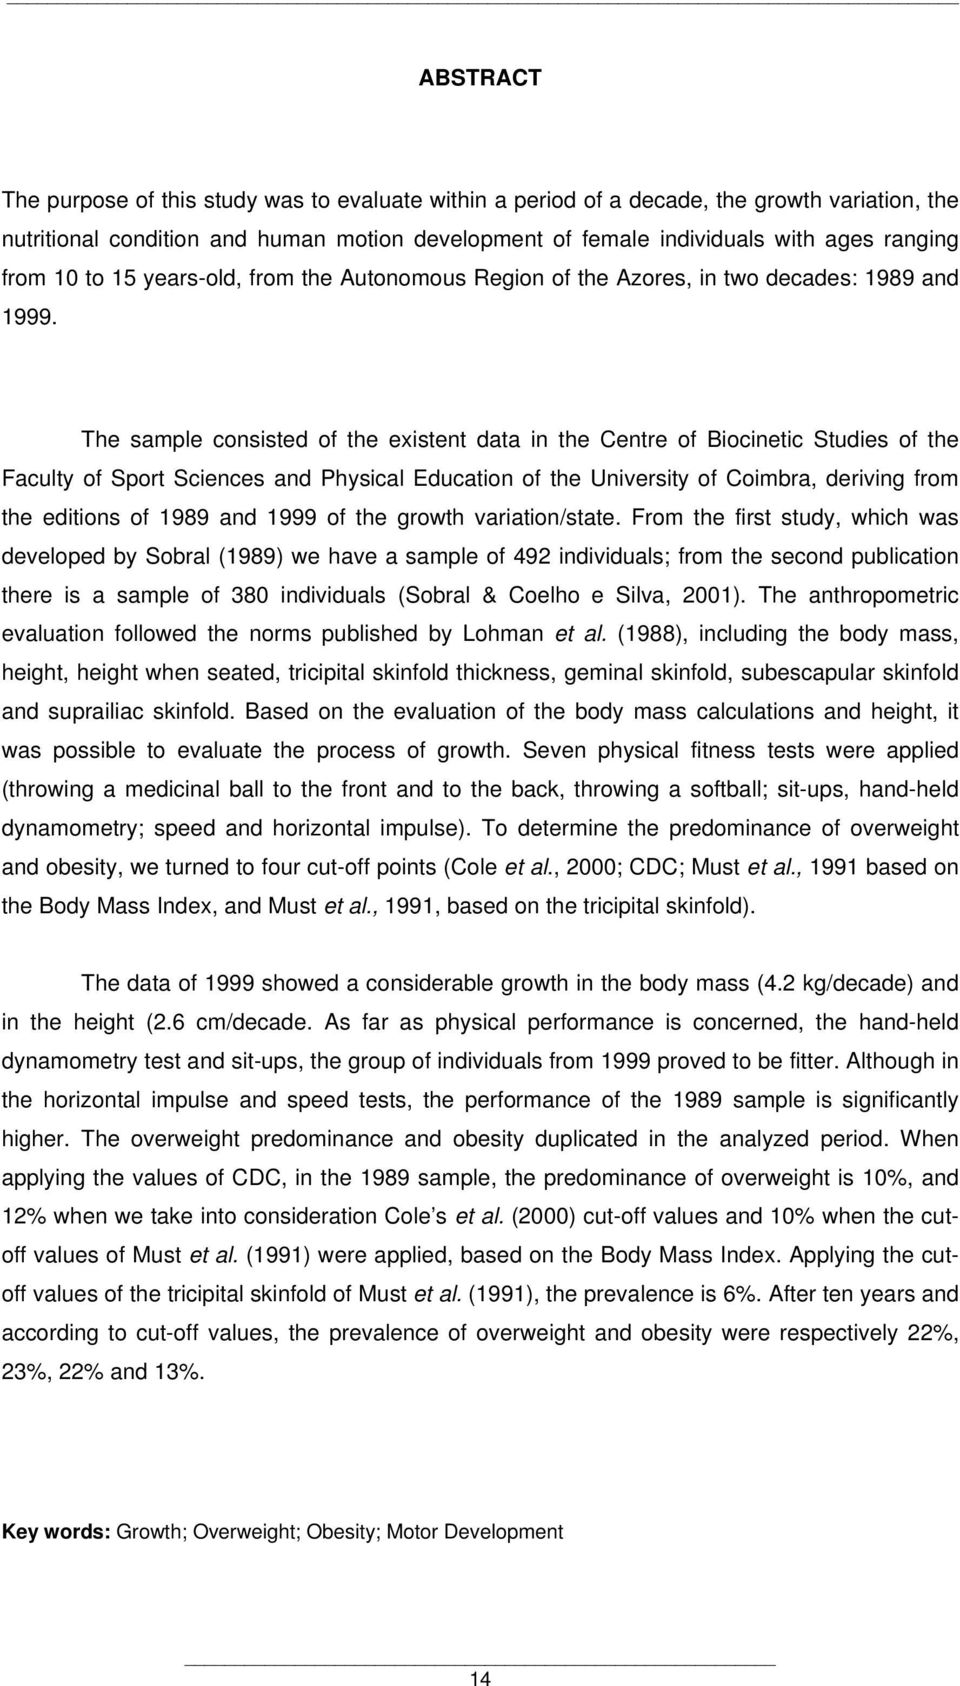 The sample consisted of the existent data in the Centre of Biocinetic Studies of the Faculty of Sport Sciences and Physical Education of the University of Coimbra, deriving from the editions of 1989